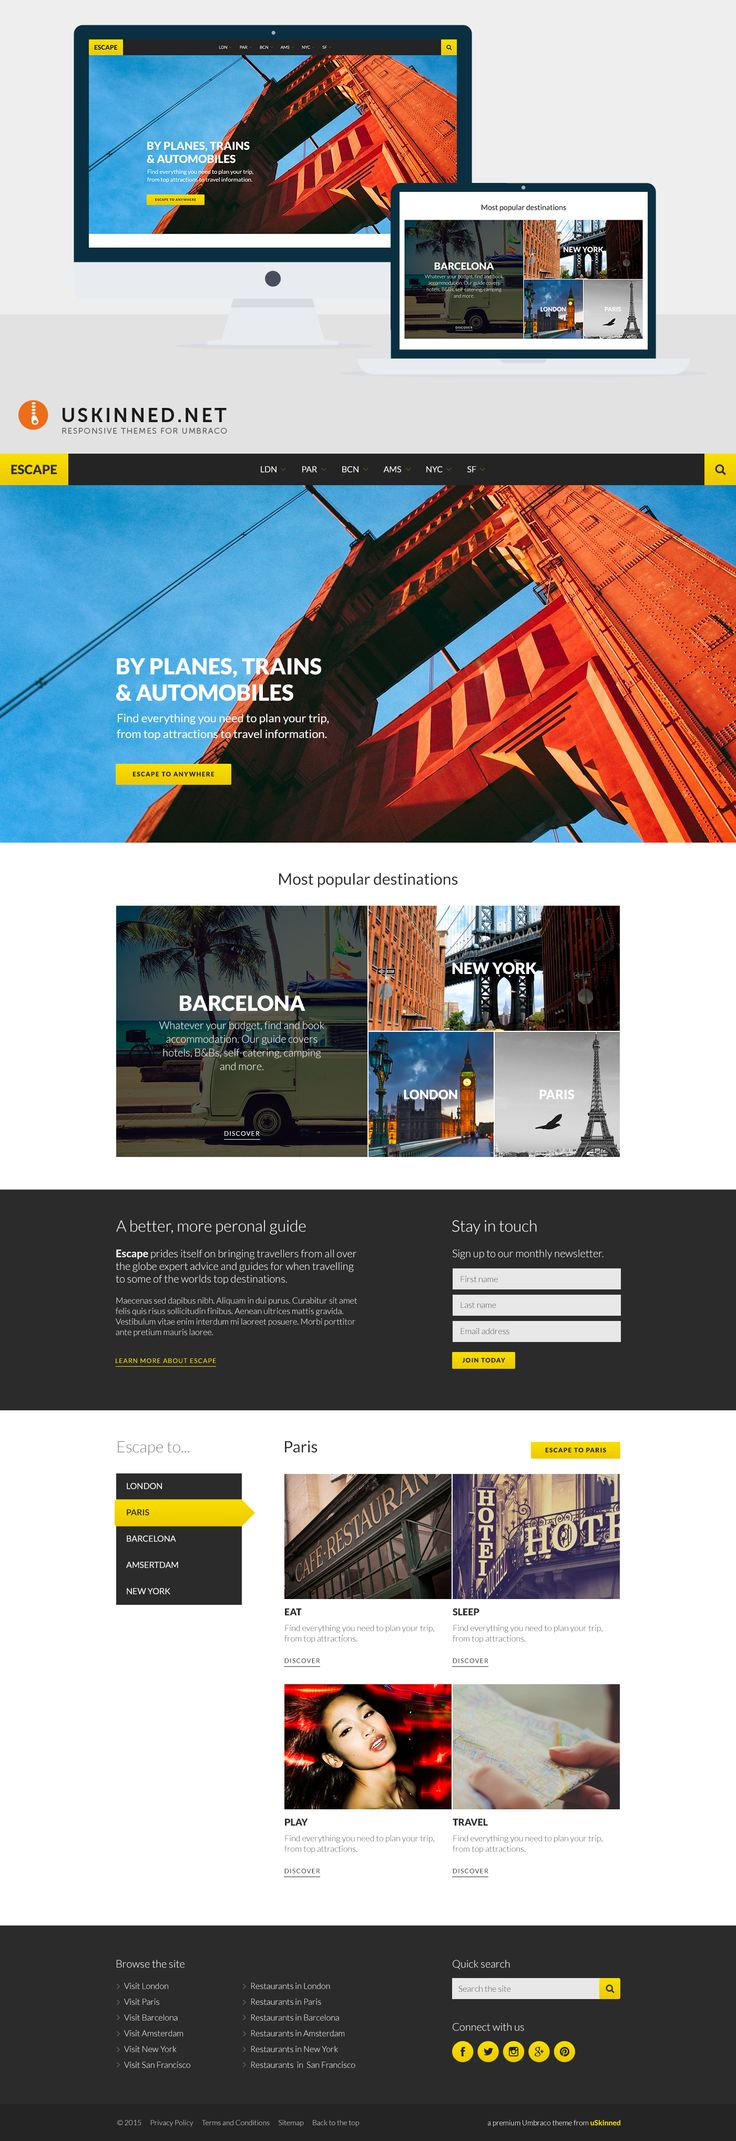 Escape is vibrant travel / tourism guide Umbraco theme coming soon to uSkinned. https://uskinned.net/themes/ #responsive #umbraco #themes #travel #tourism #wordpress